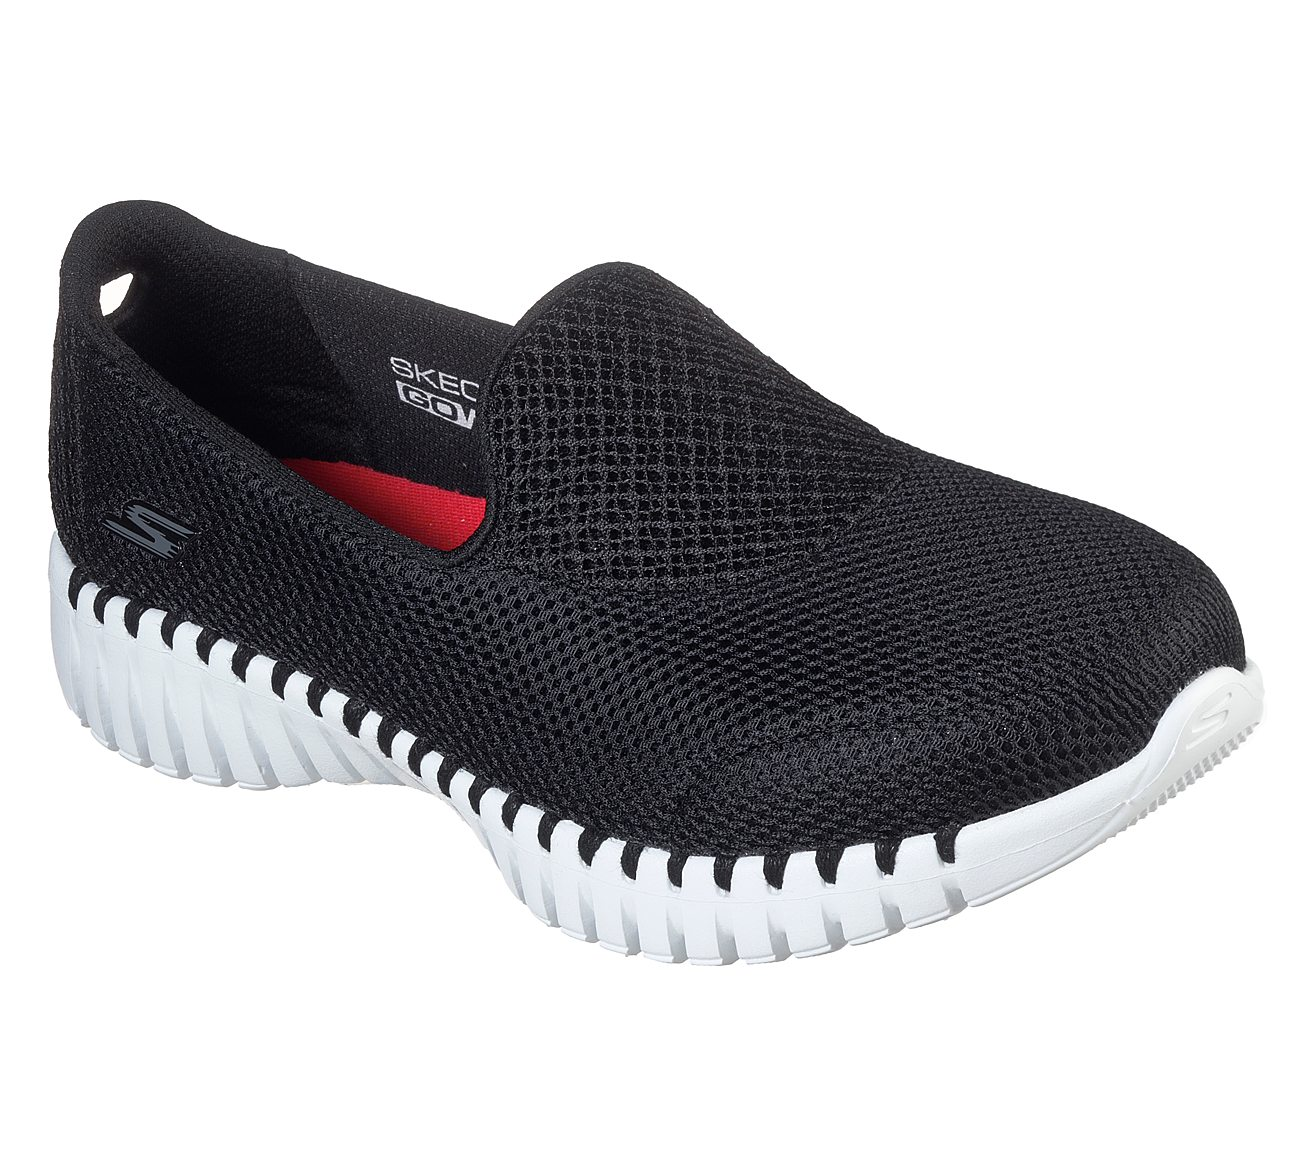 Foot Smart : Casual Comfort from Skechers | Milled